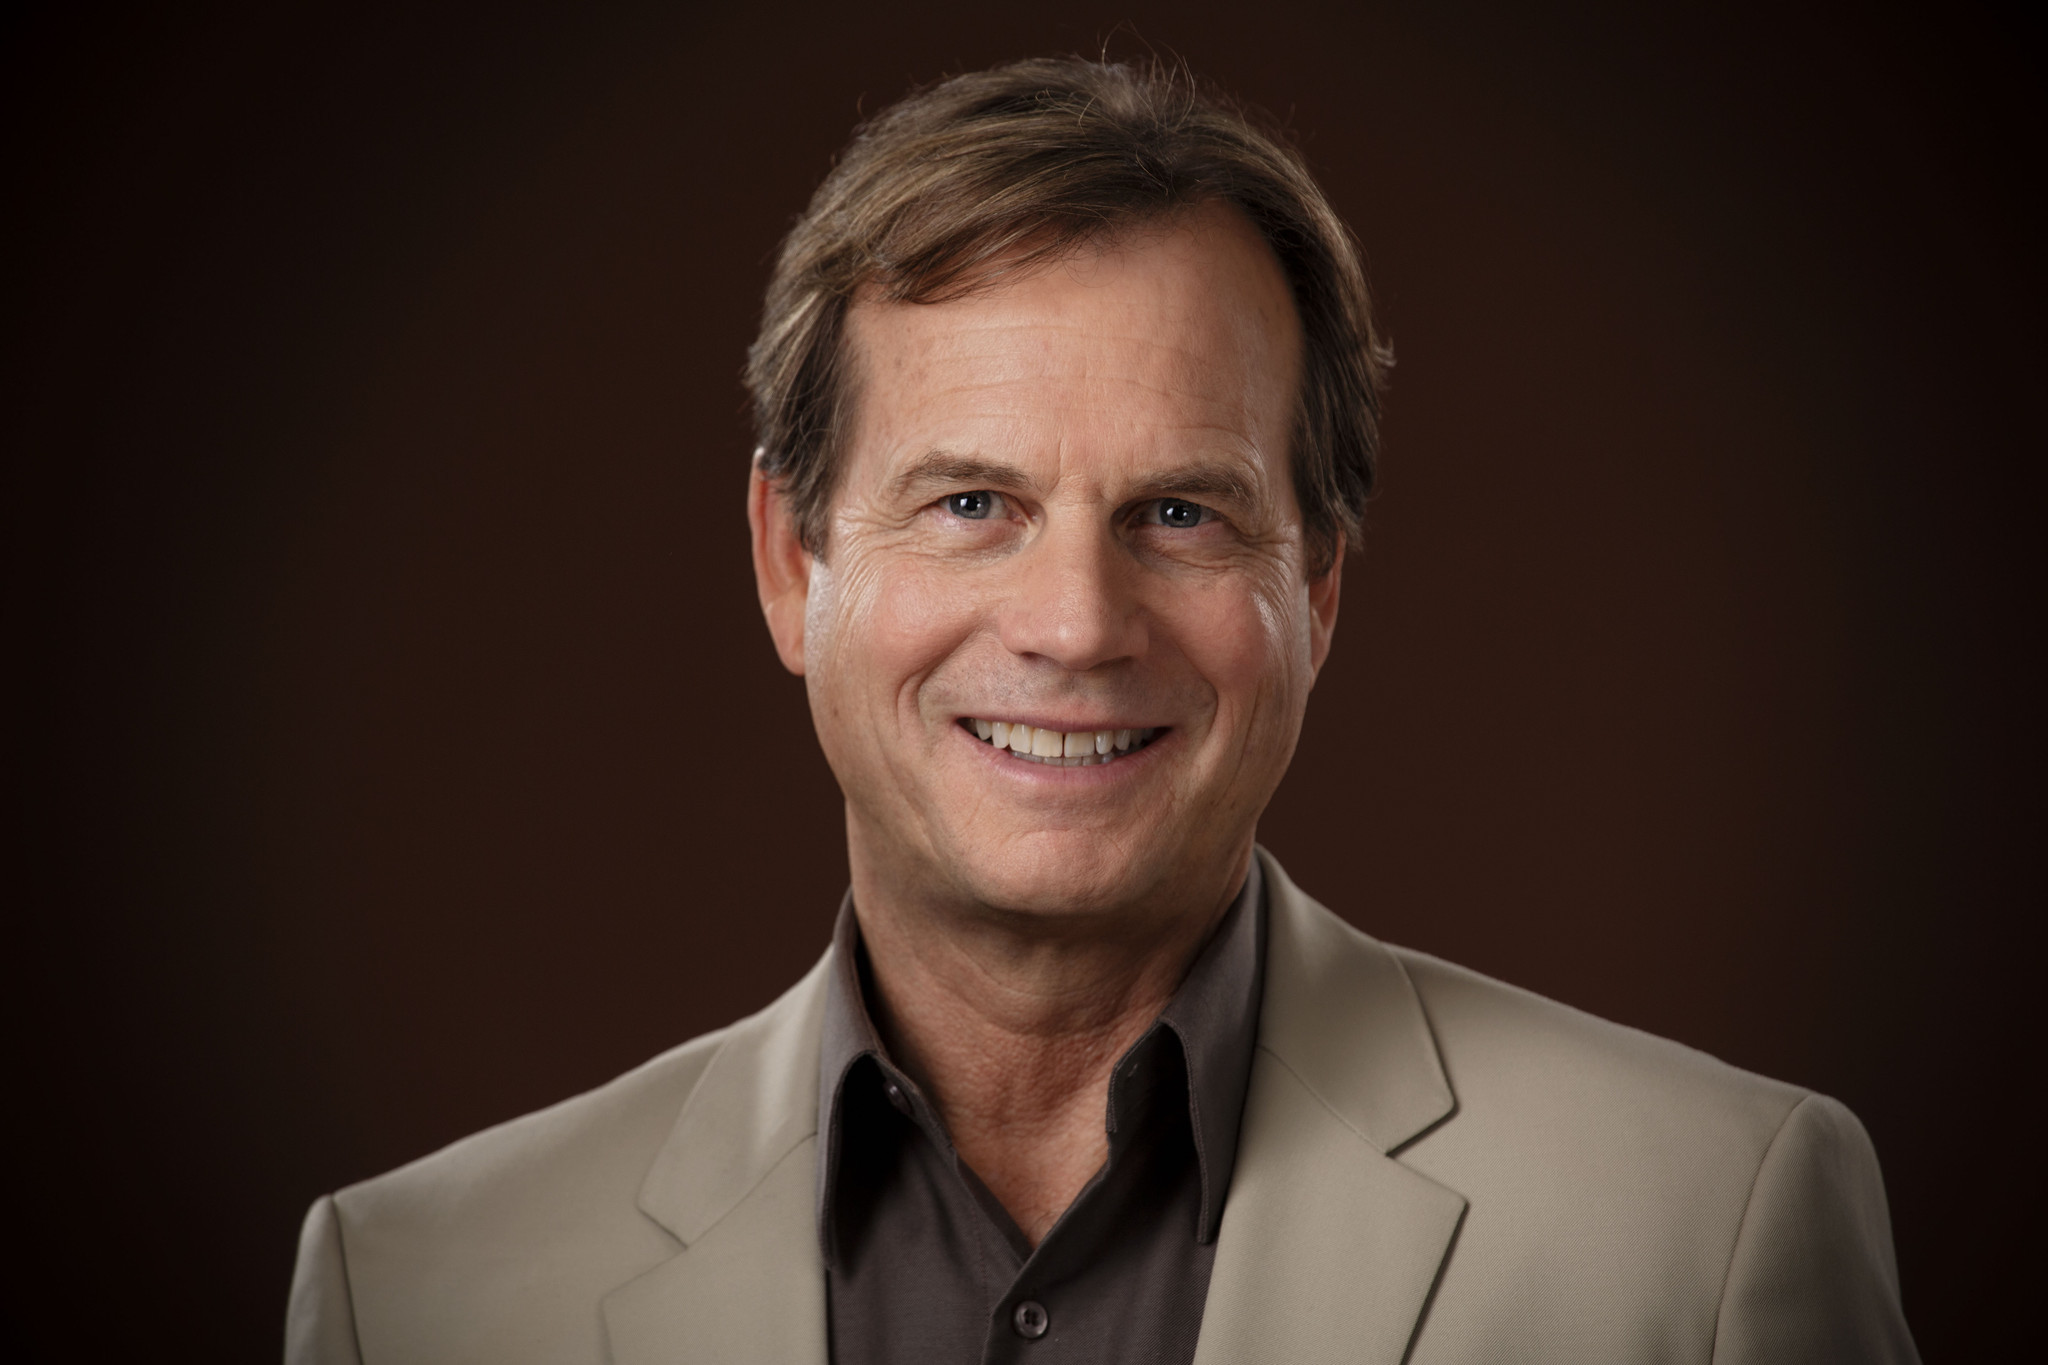 Handsome American actor Bill Paxton